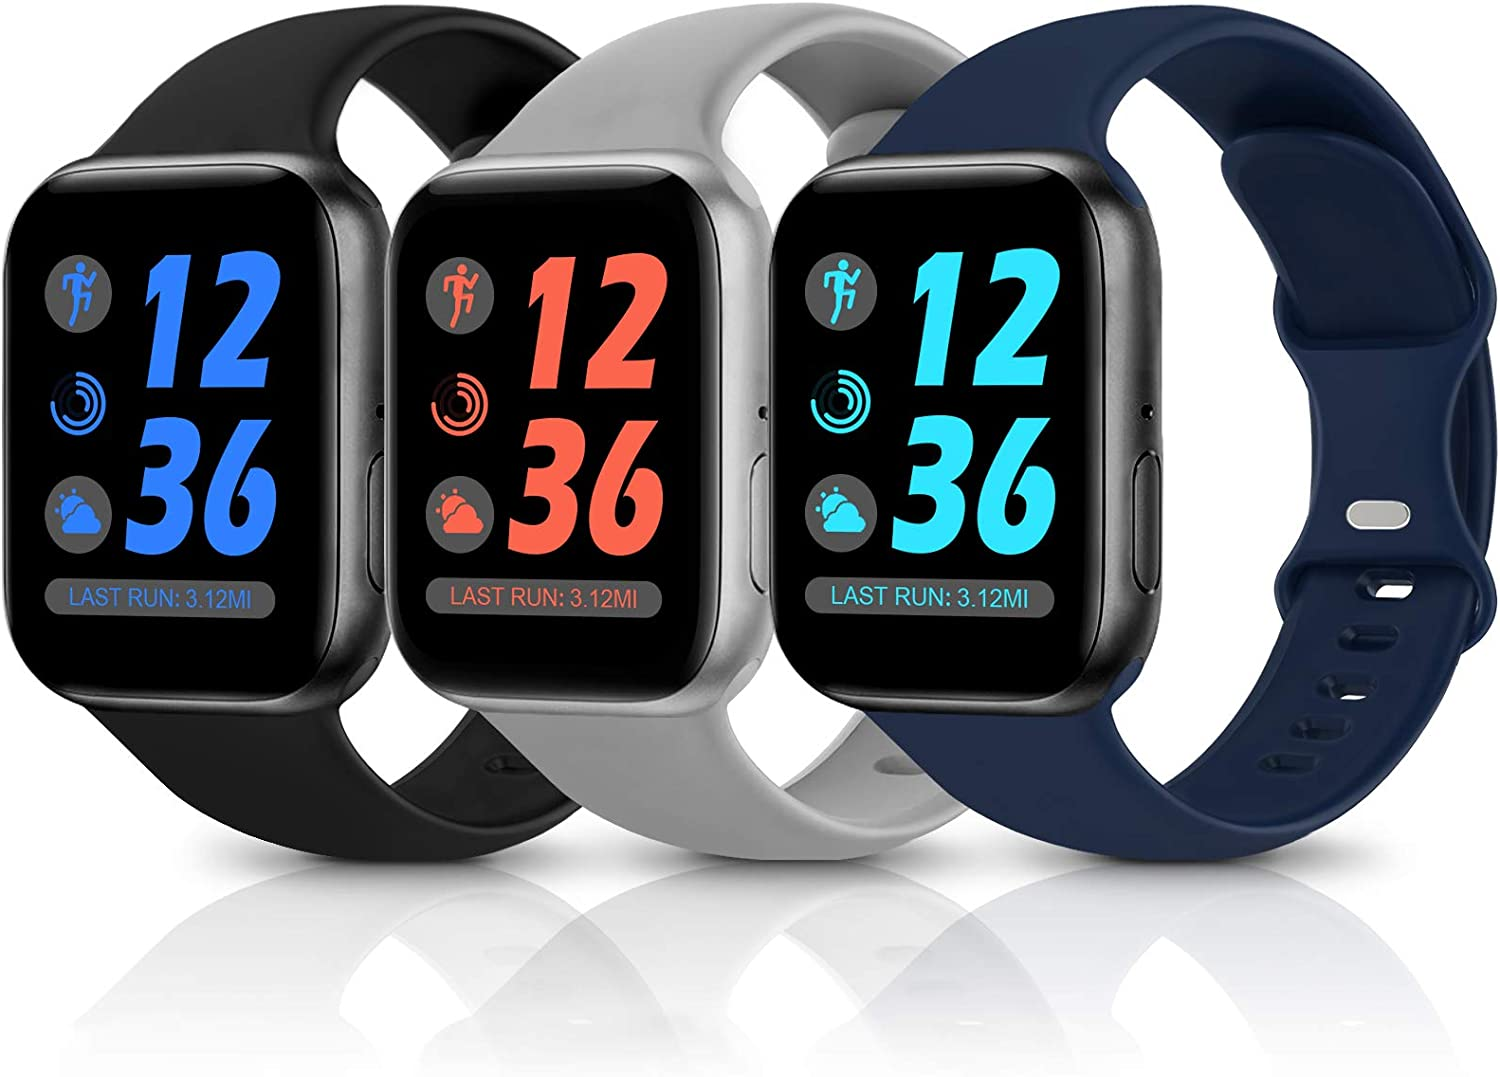 Sport Silicone Band Compatible with Apple Watch Bands 38mm 40mm 42mm 44mm,Soft Replacement Wristbands for iWatch Series 1/2/3/4/5/6/SE,Women Men,3 Pack(Black/Navy Blue/Grey,38mm/40mm-M/L)